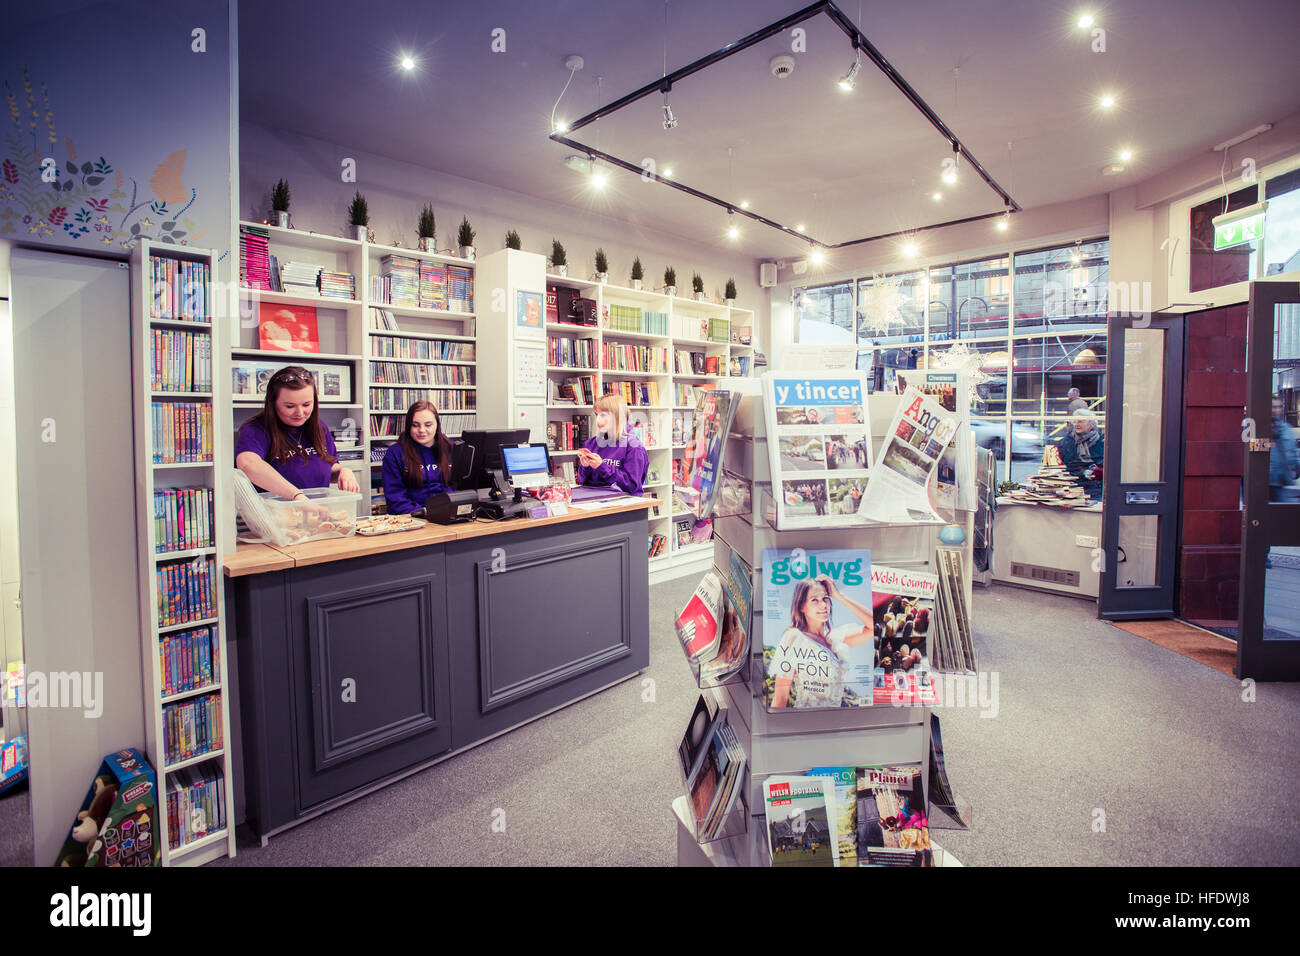 Siop y Pethe, small independent welsh language bookshop and gift ...